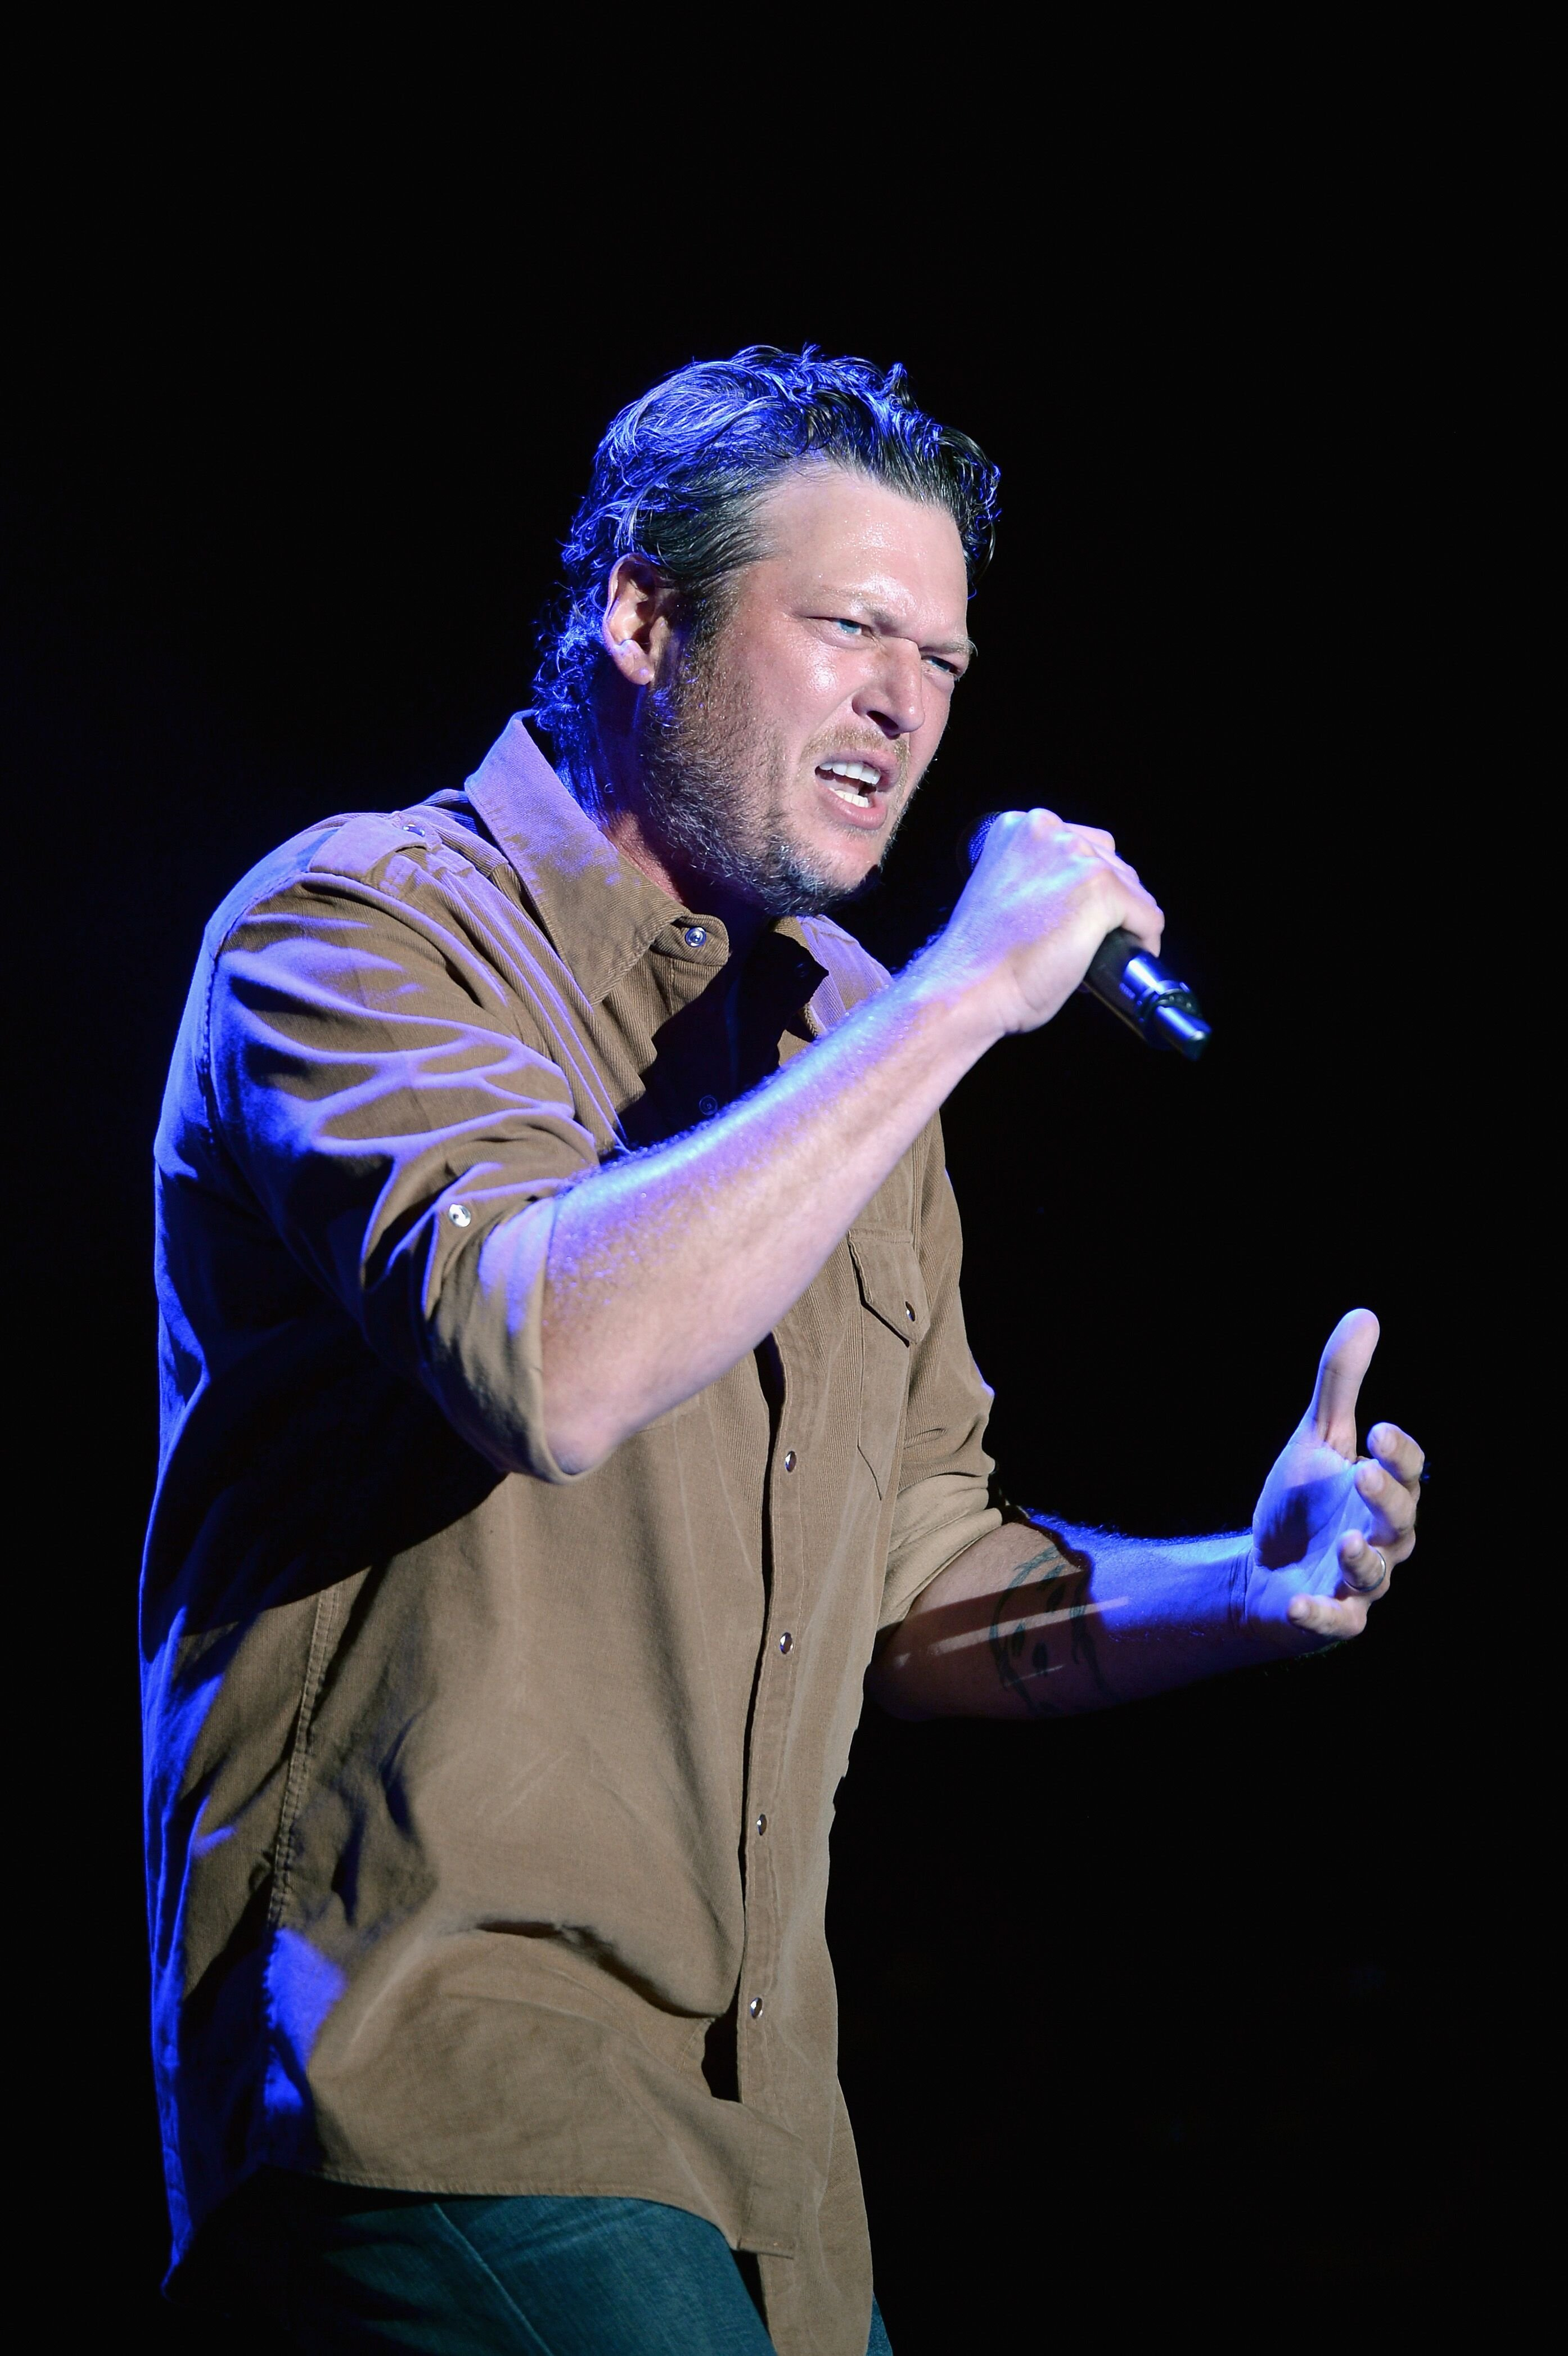 Singer Blake Shelton performs onstage during day 1 of the Big Barrel Country Music Festival on June 26, 2015 | Photo: Getty Images